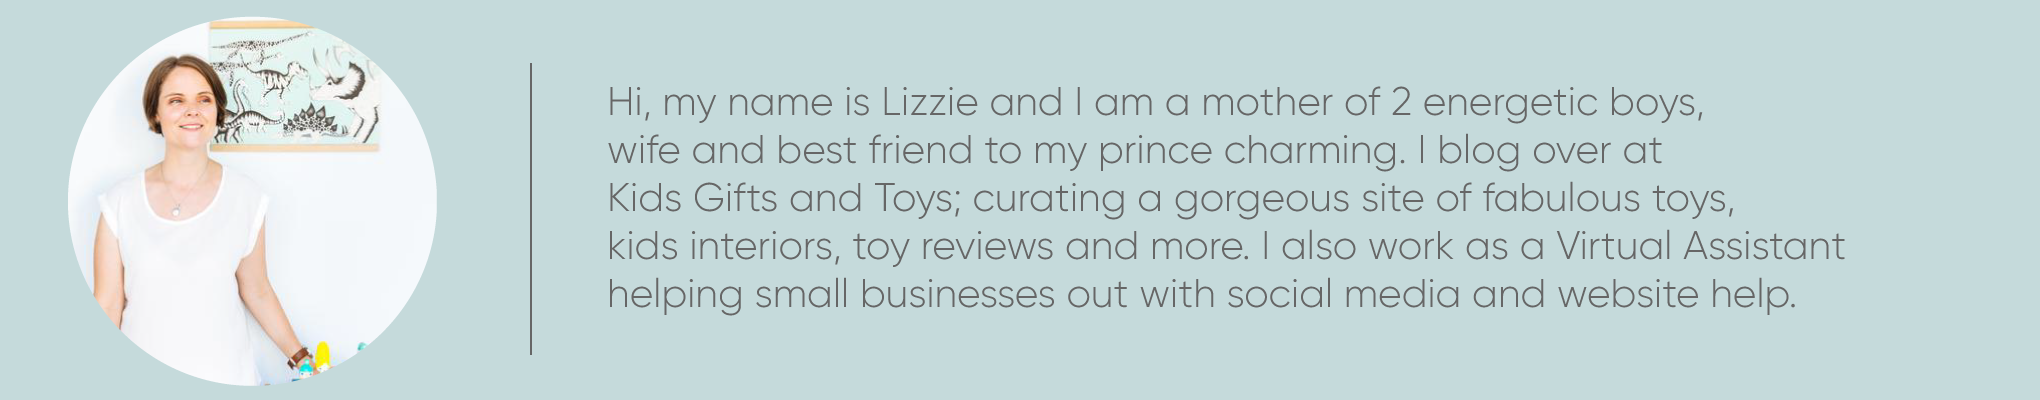 Lizzie Wall Kids Gifts and Toys Blogger for Tiny Paper Co.